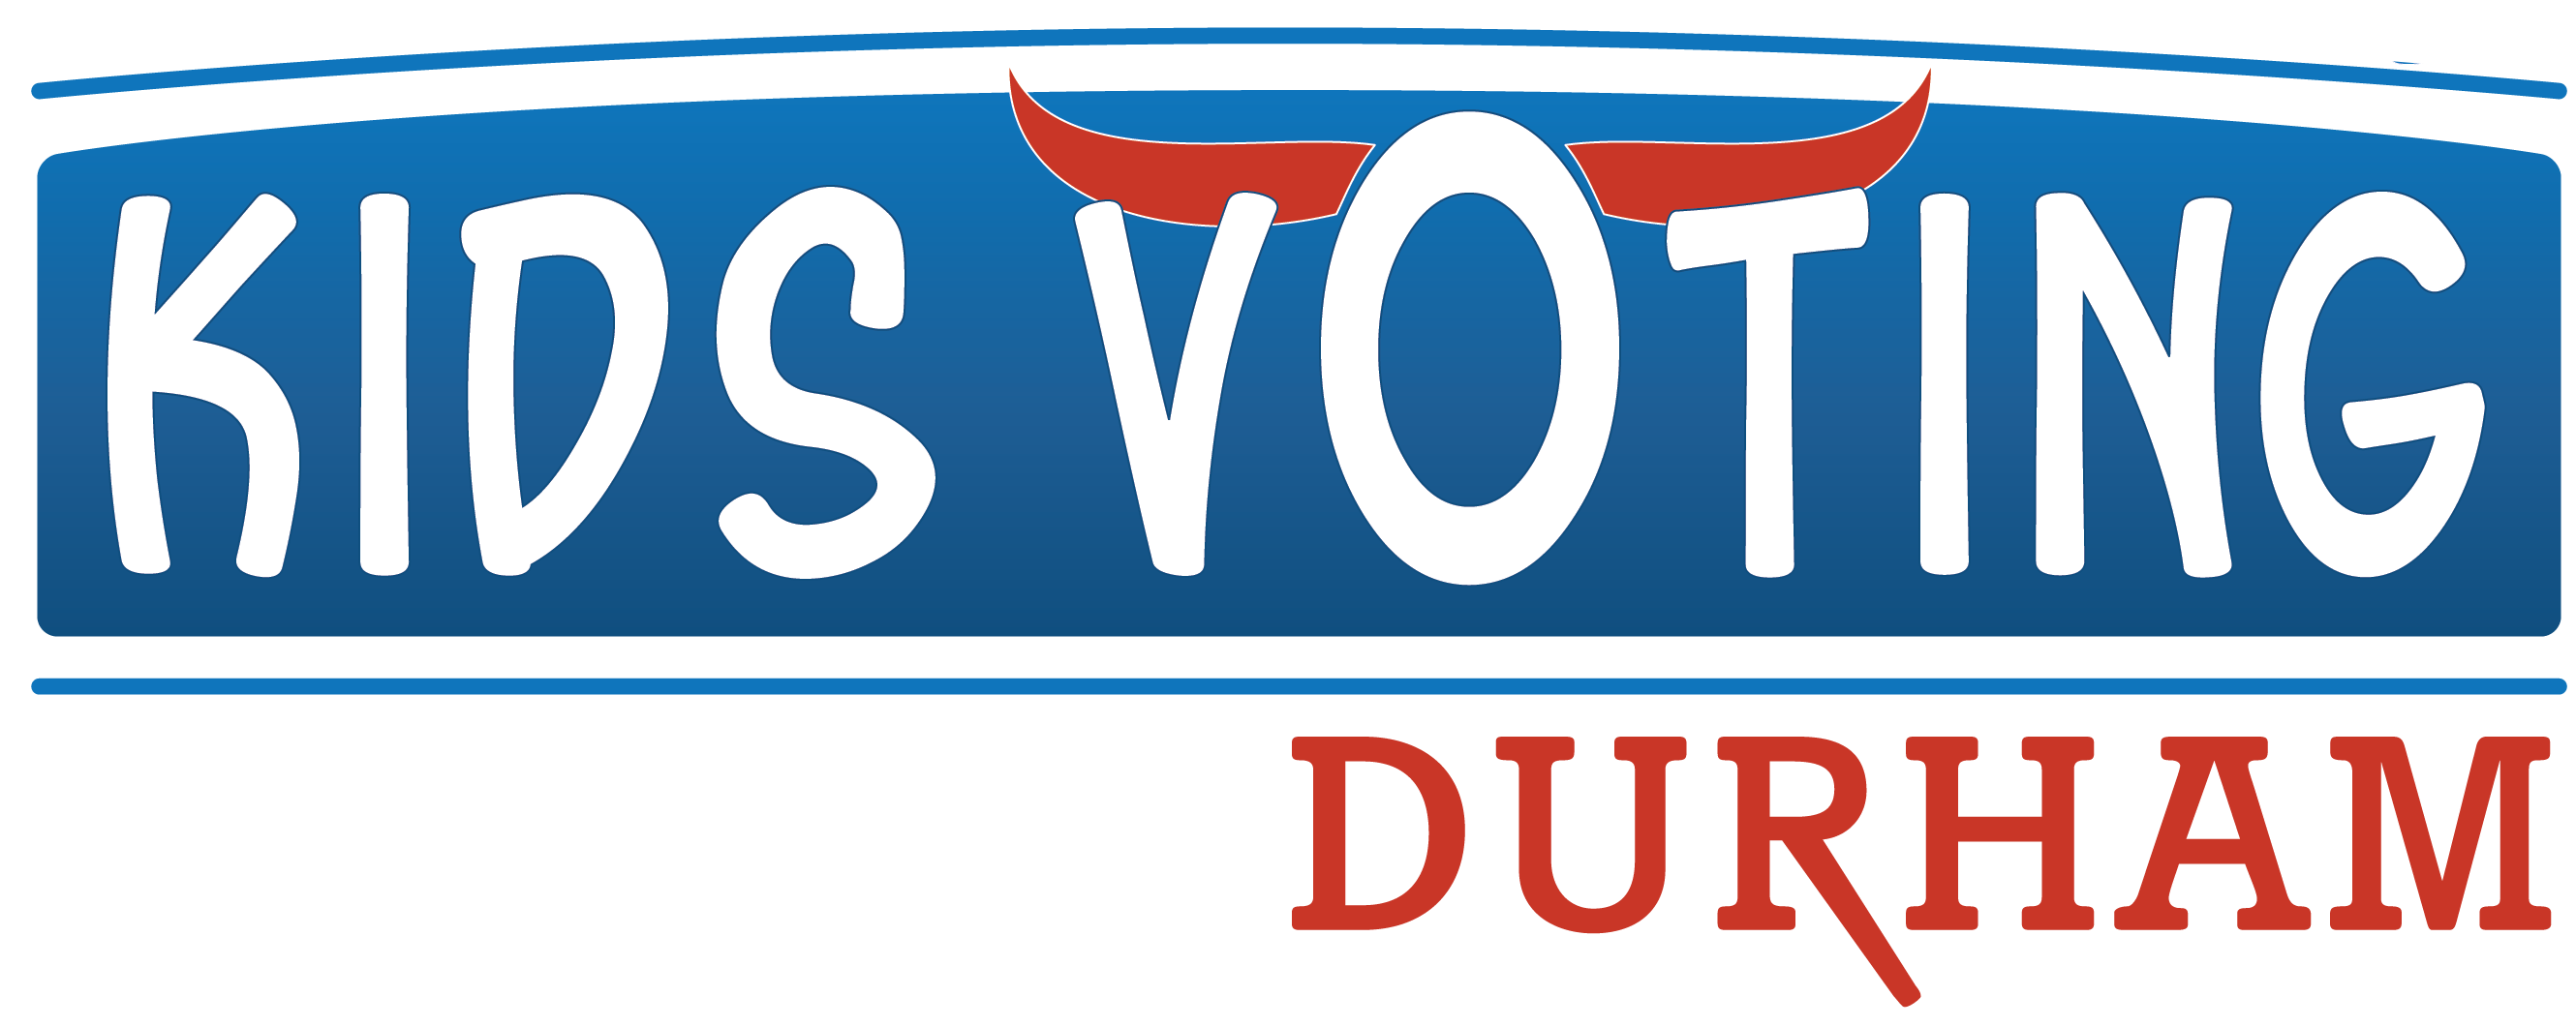 Kids durham educated engaged. Voting clipart student election